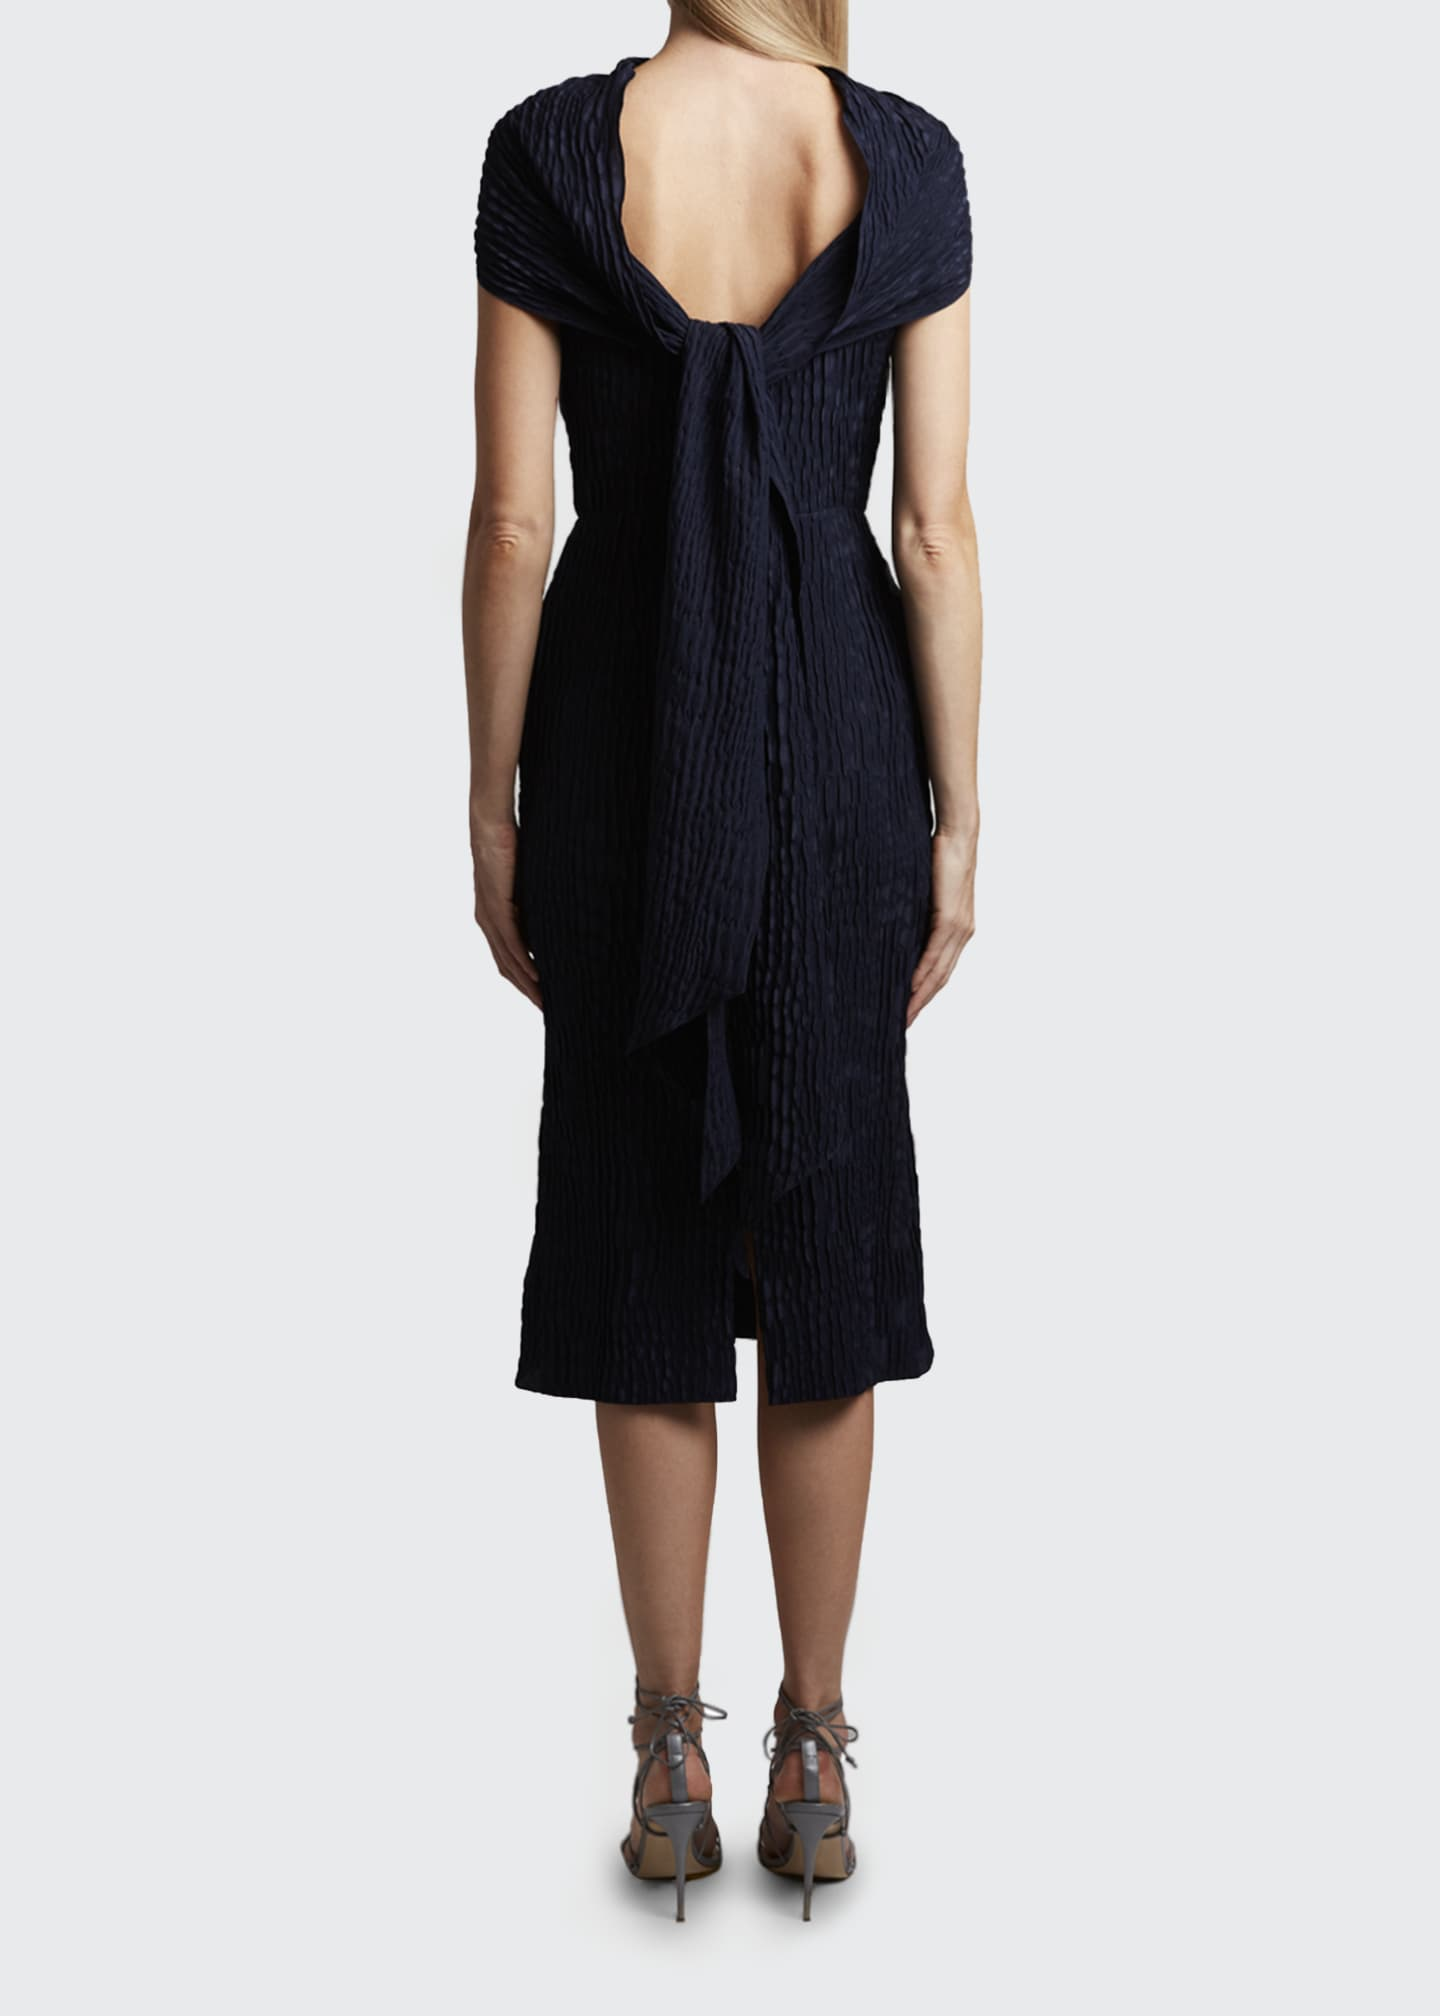 Image 2 of 3: Belem Dress Silk Jacquard High Neck Dress